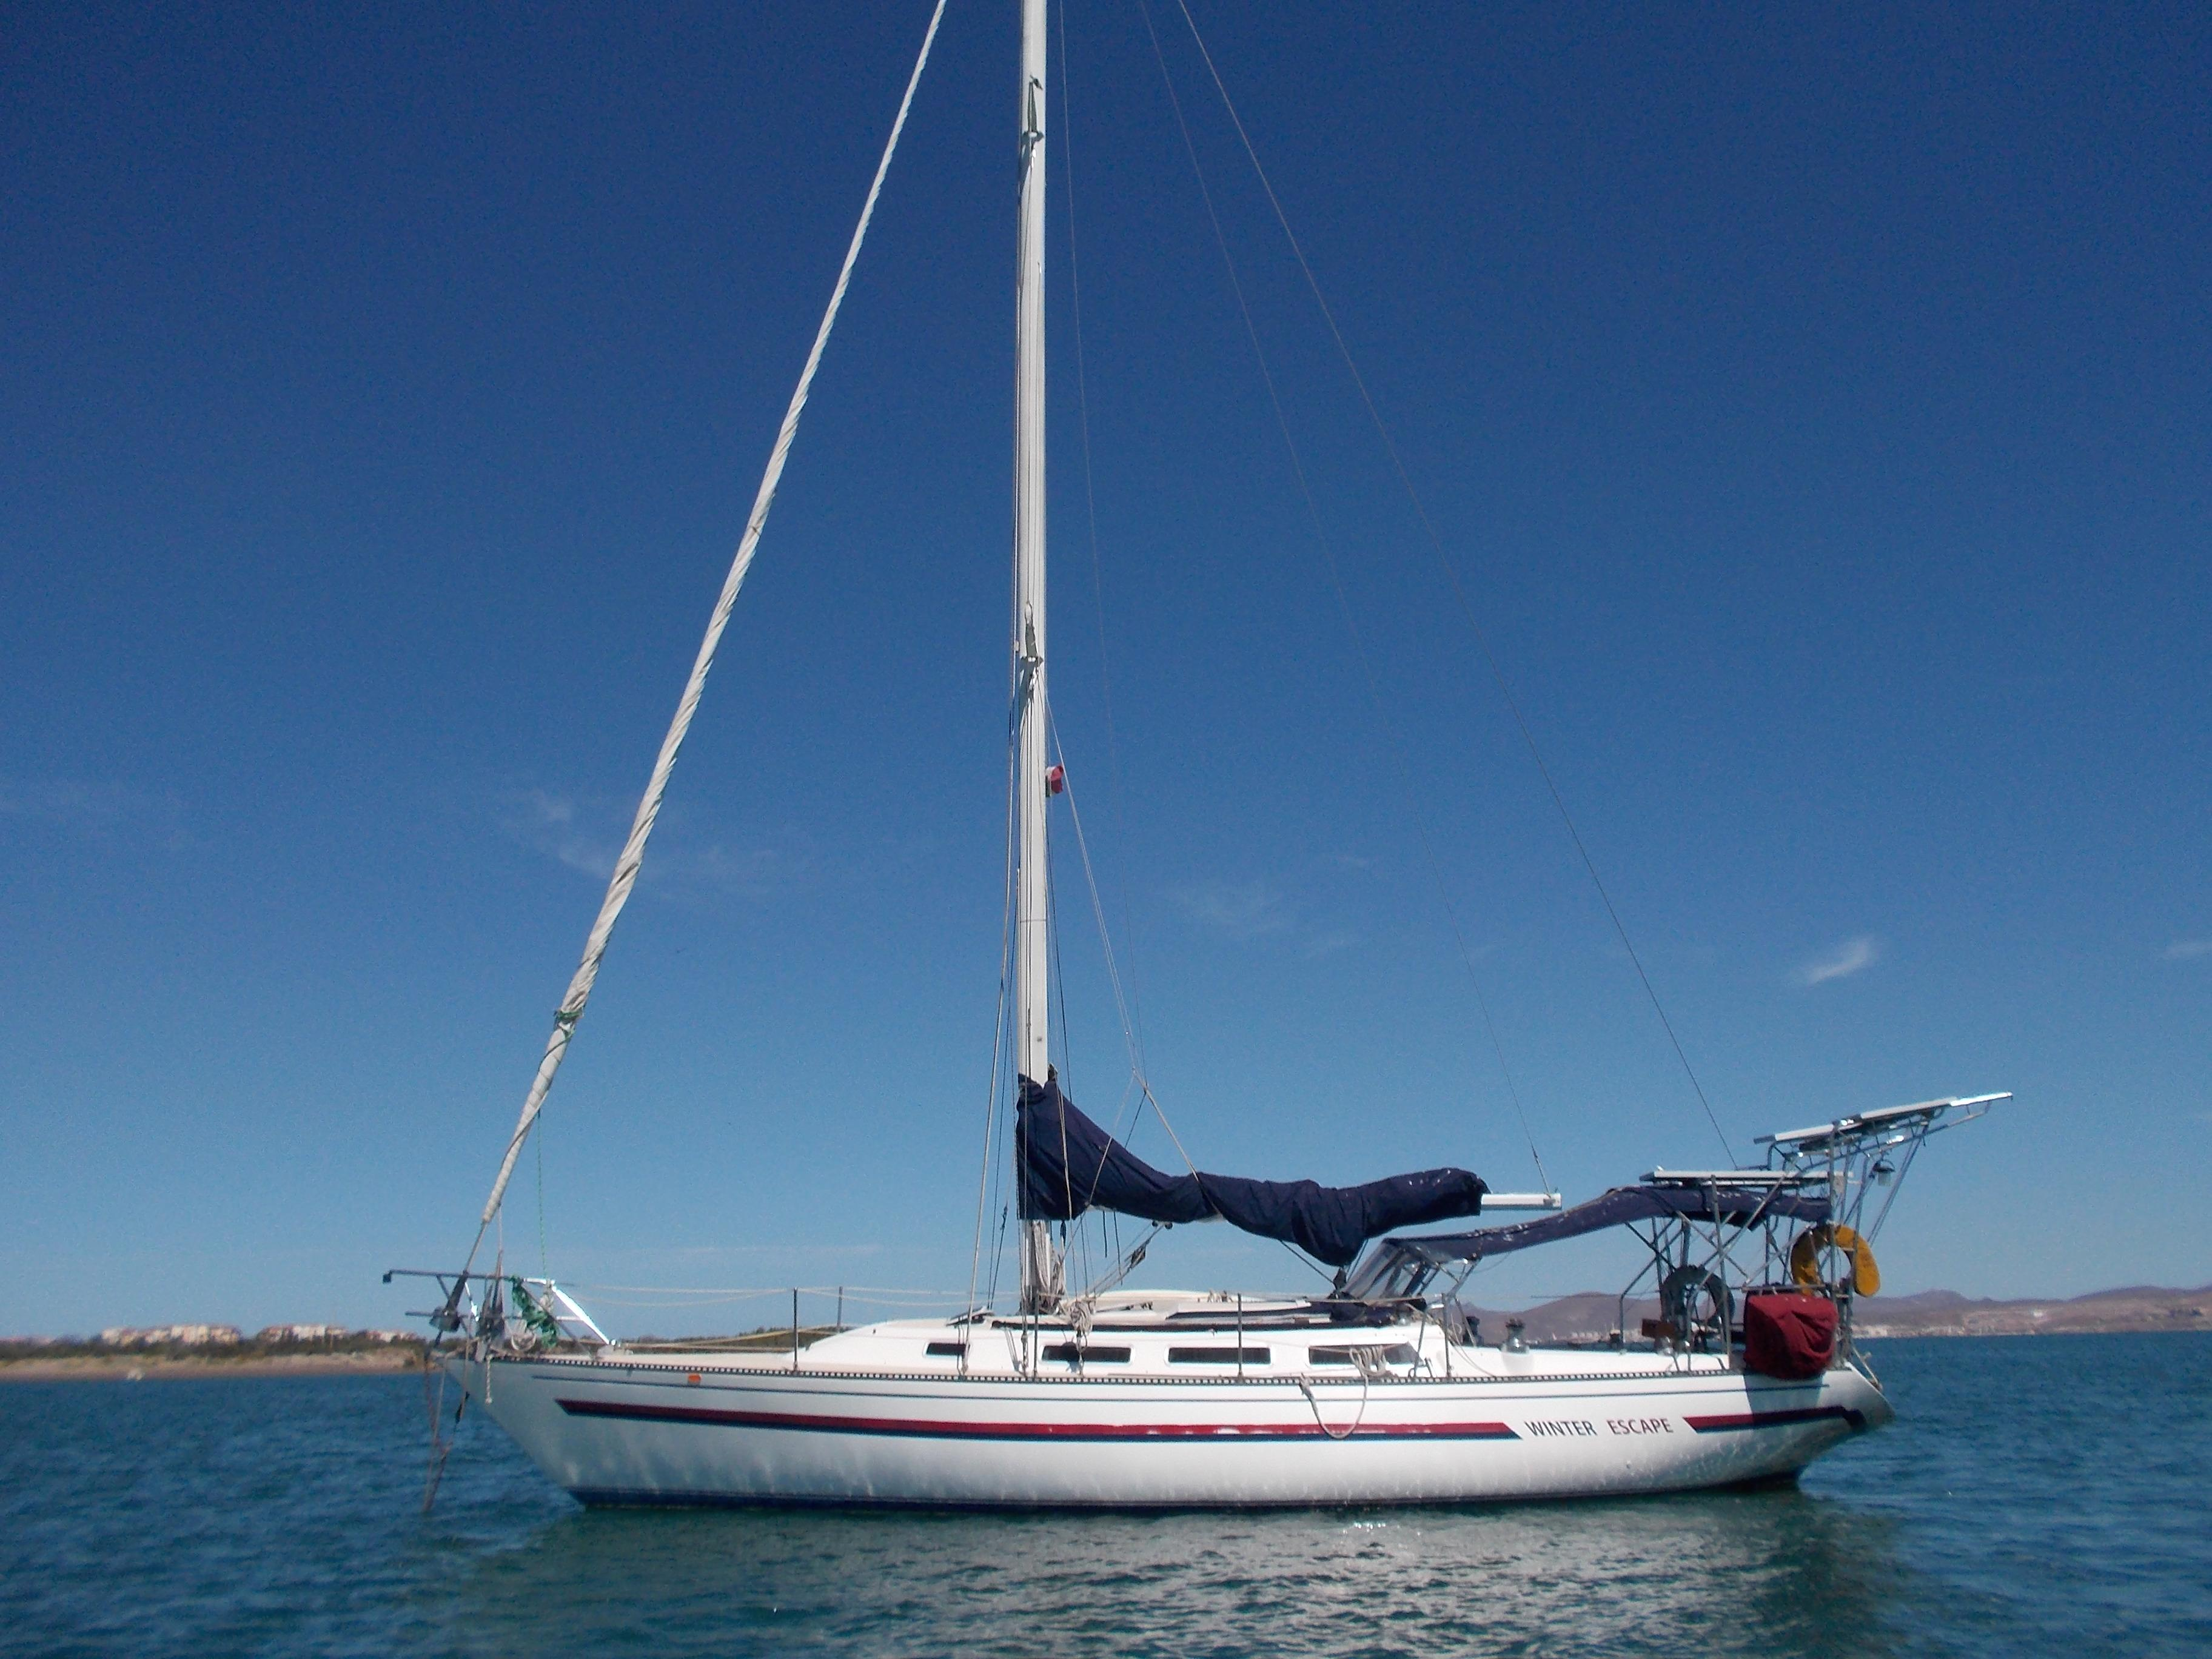 38' Catalina C38+Boat for sale!